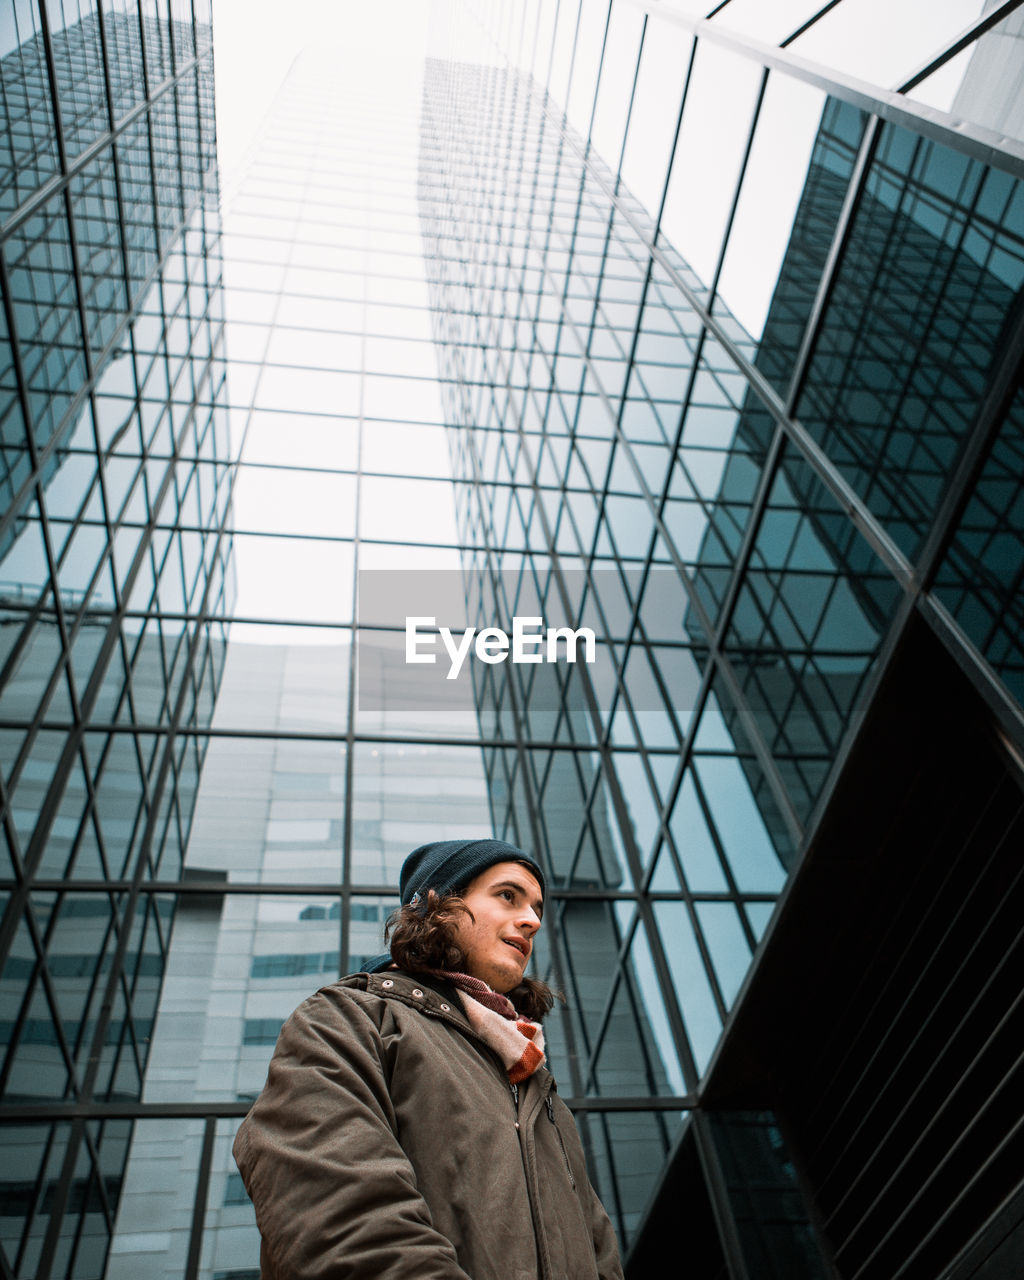 Low Angle View Of Man Against Skyscraper In City